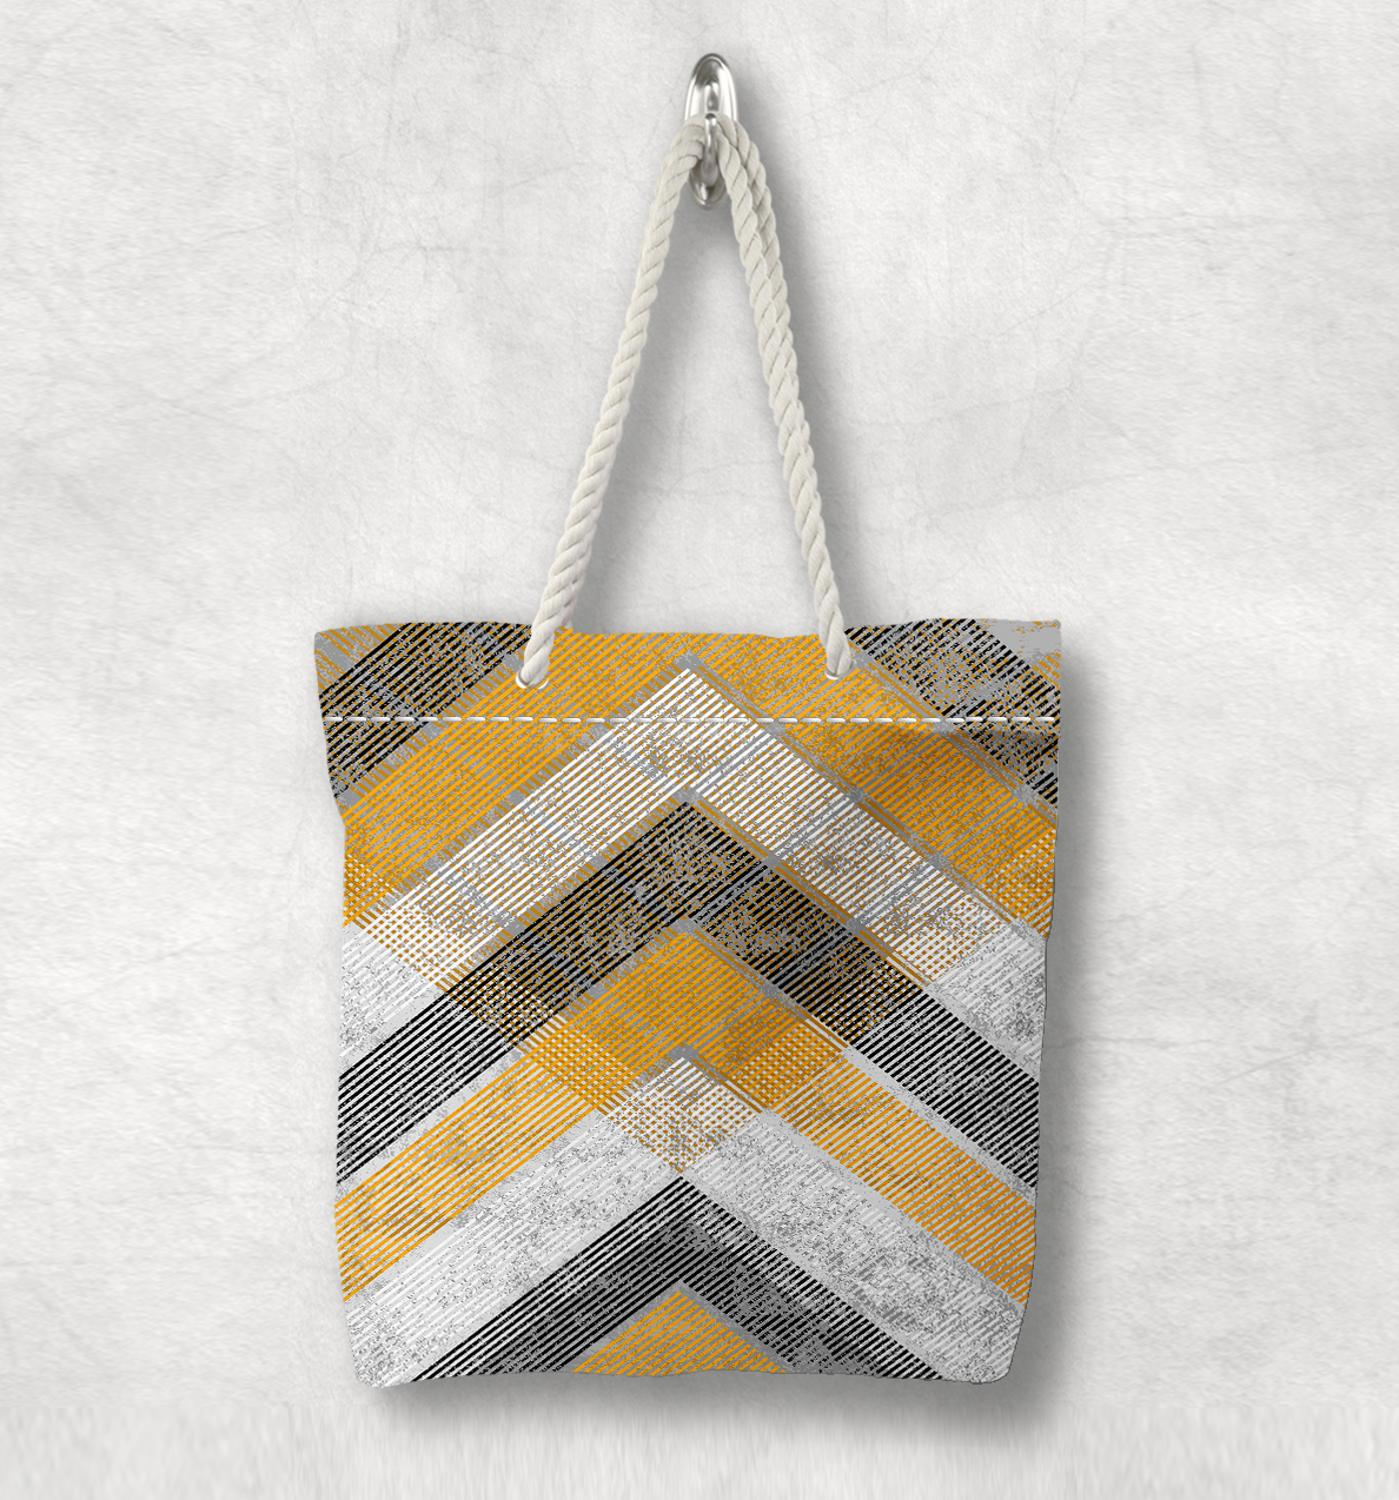 Else Gray Yellow Arrow Lines Geometric New Fashion White Rope Handle Canvas Bag Cotton Canvas Zippered Tote Bag Shoulder Bag